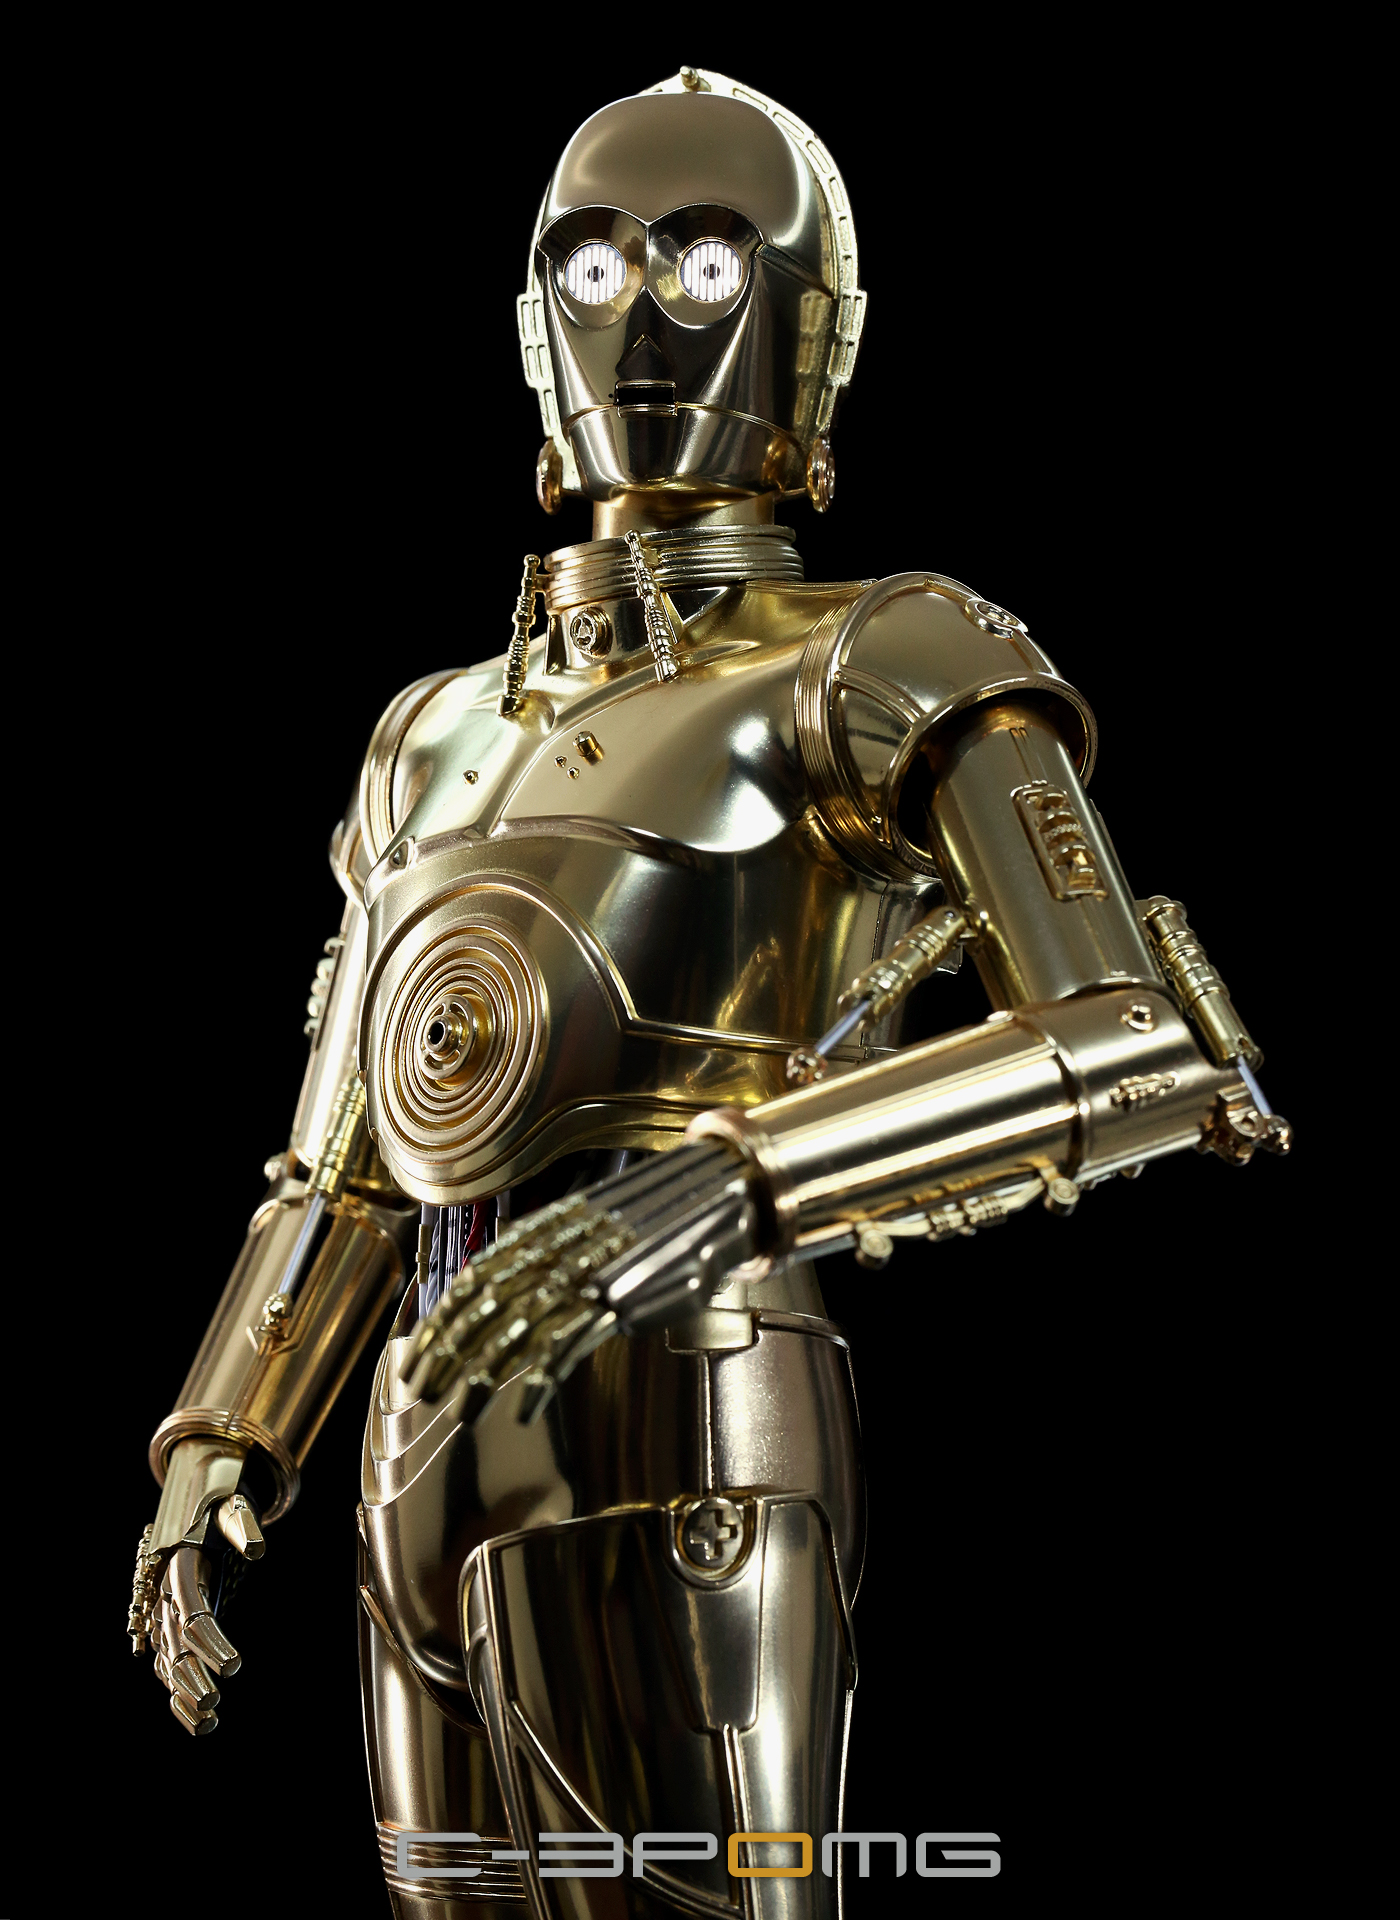 [Bandai] Star Wars: C-3PO - Perfect Model 1/6 scale - LANÇADO!!! - Página 2 C-3PO1013_zpsef7f2a3d